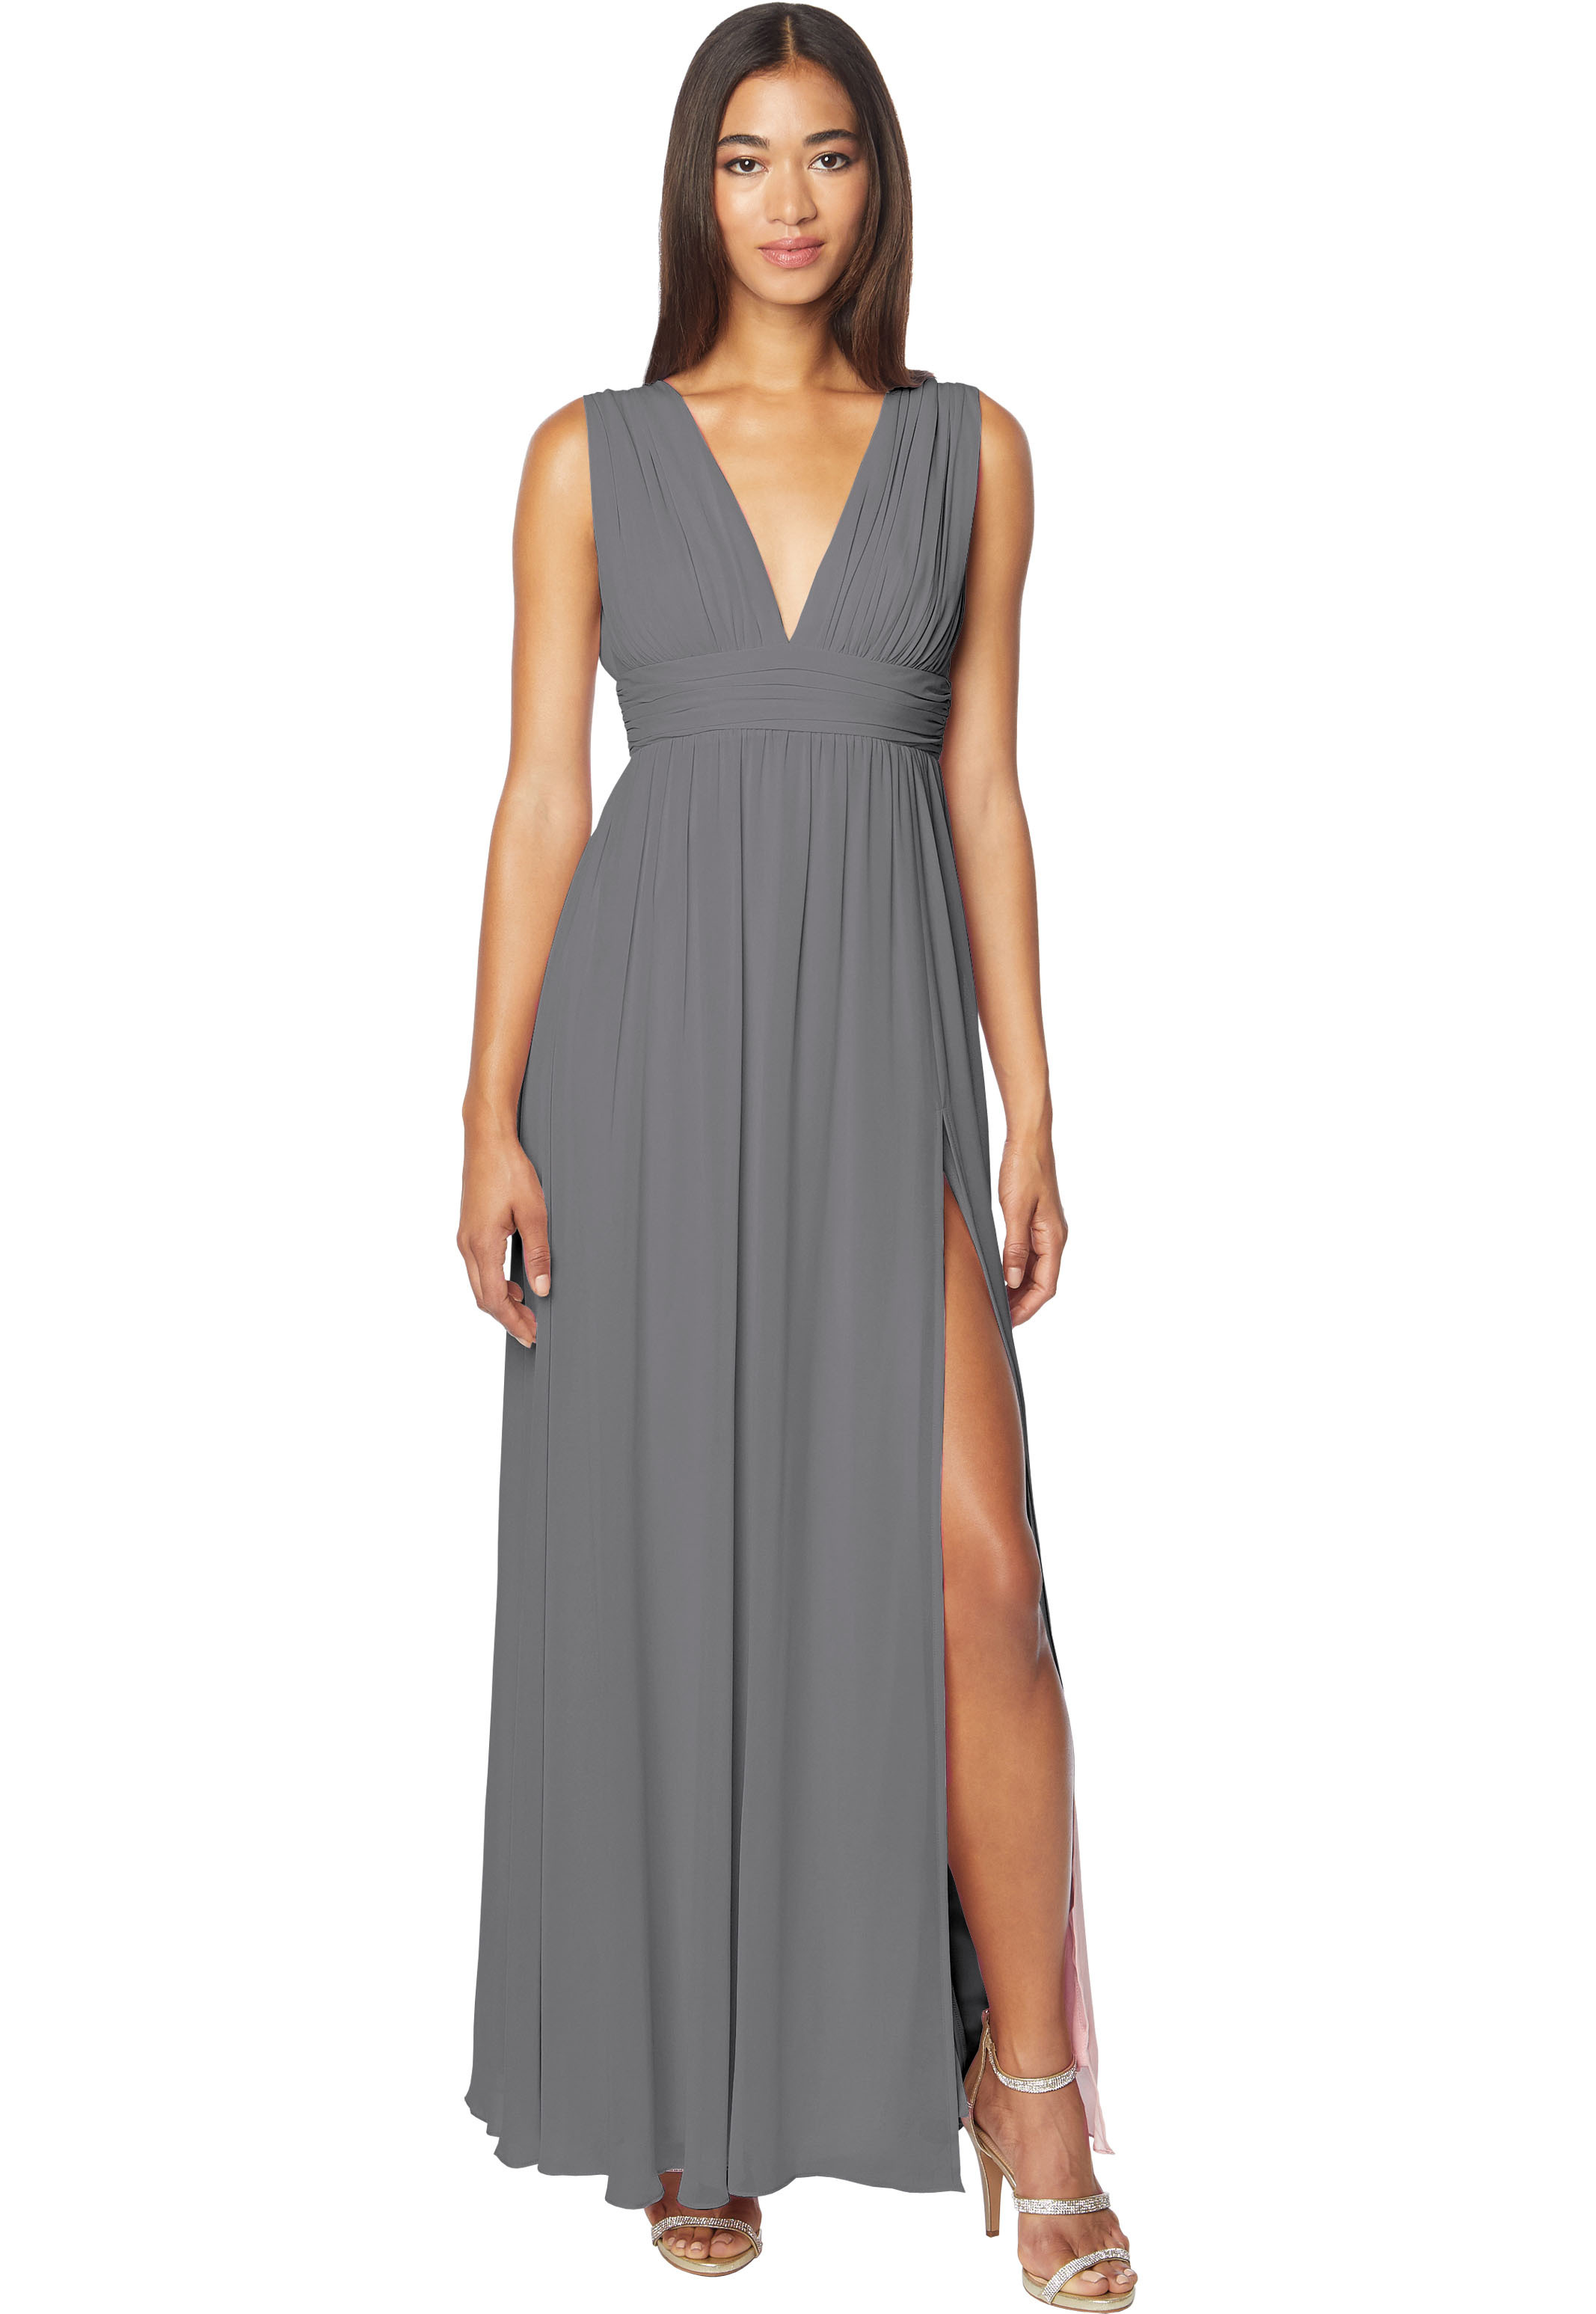 Bill Levkoff PEWTER Chiffon Sleeveless A-line gown, $178.00 Front